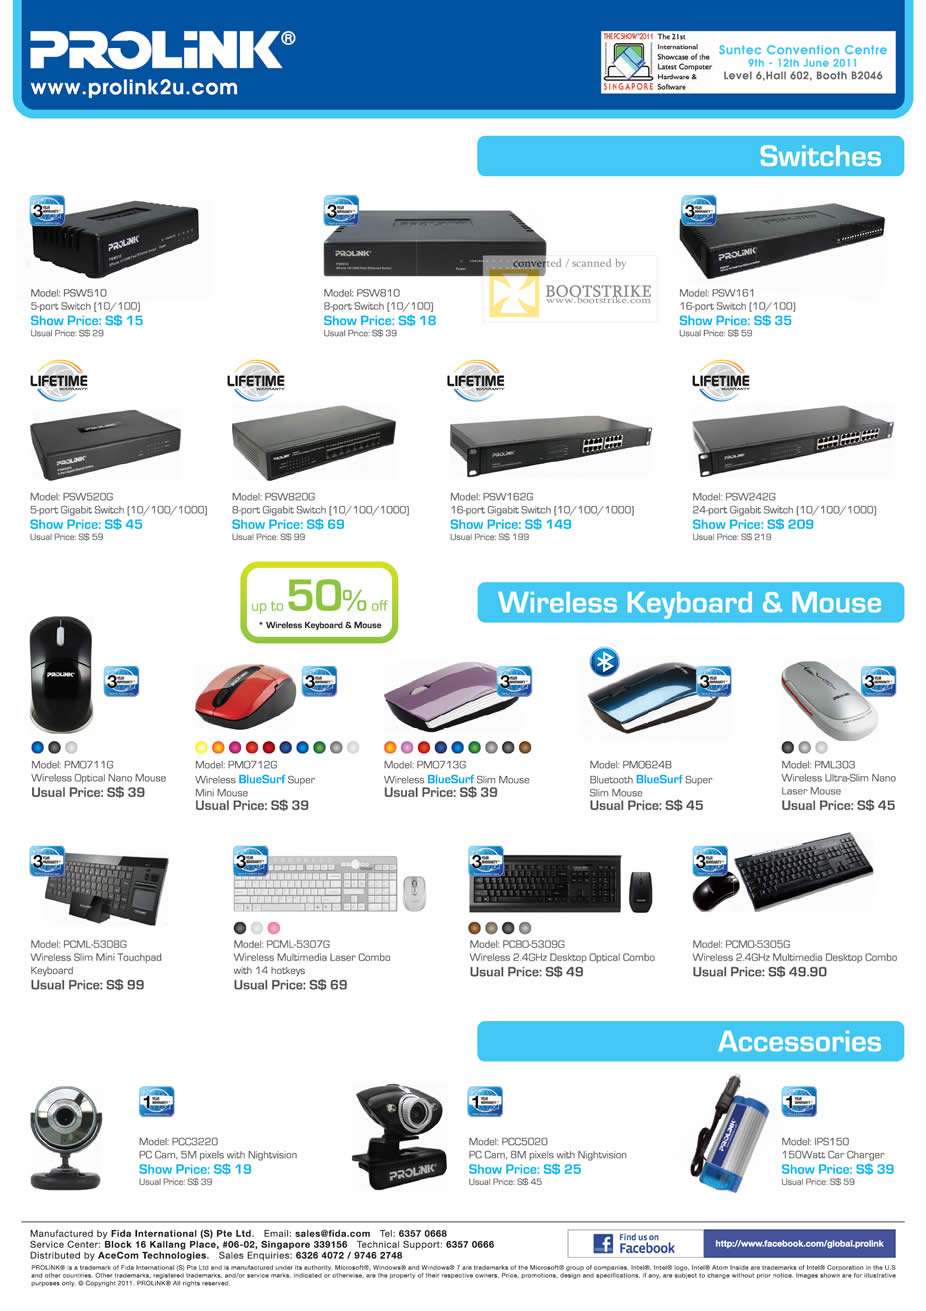 PC Show 2011 price list image brochure of Prolink Networking Switches Wireless Keyboard Mouse Accessories Webcam